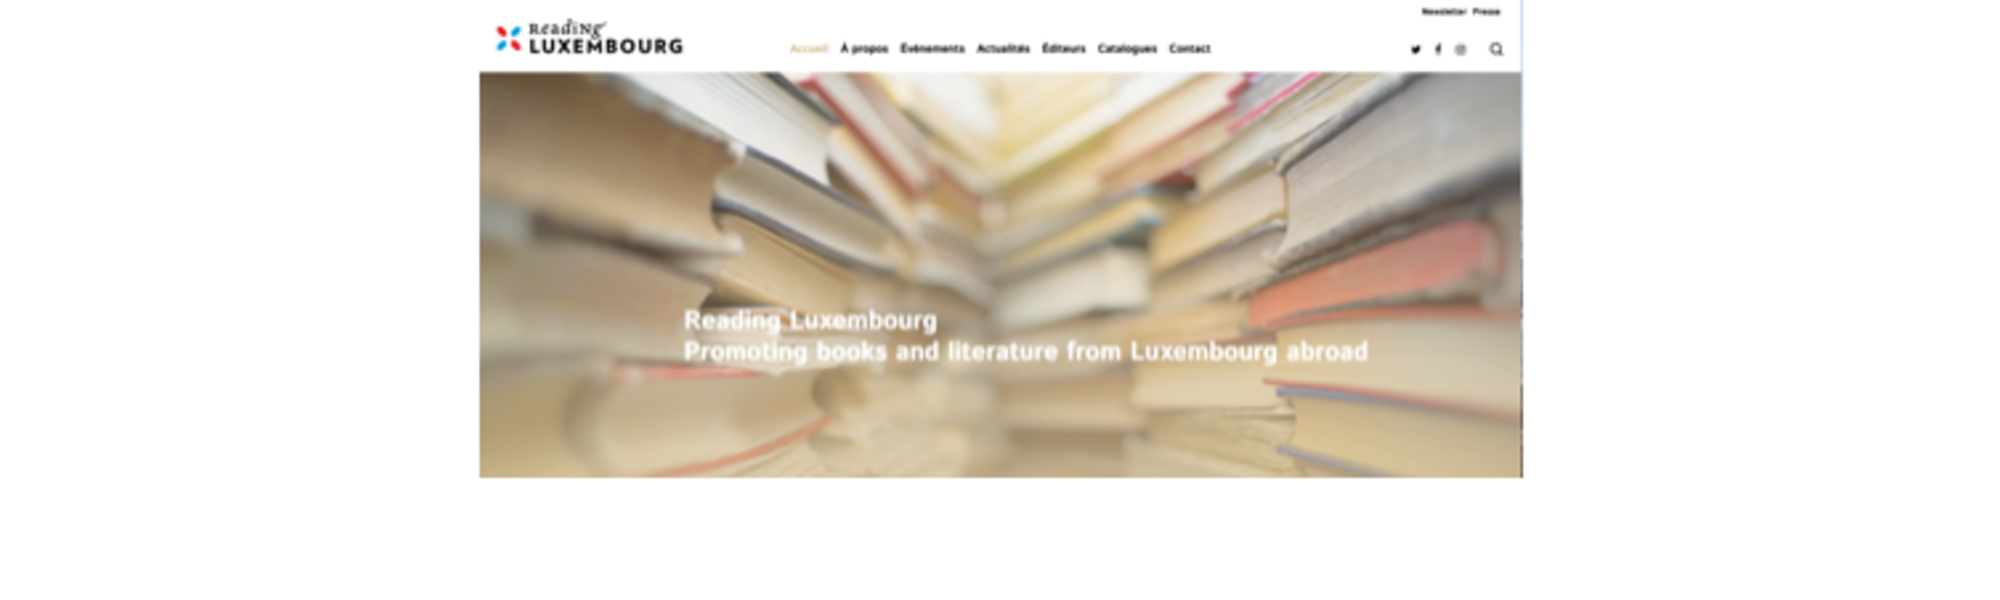 Reading Luxembourg: Frankfurt reloaded...